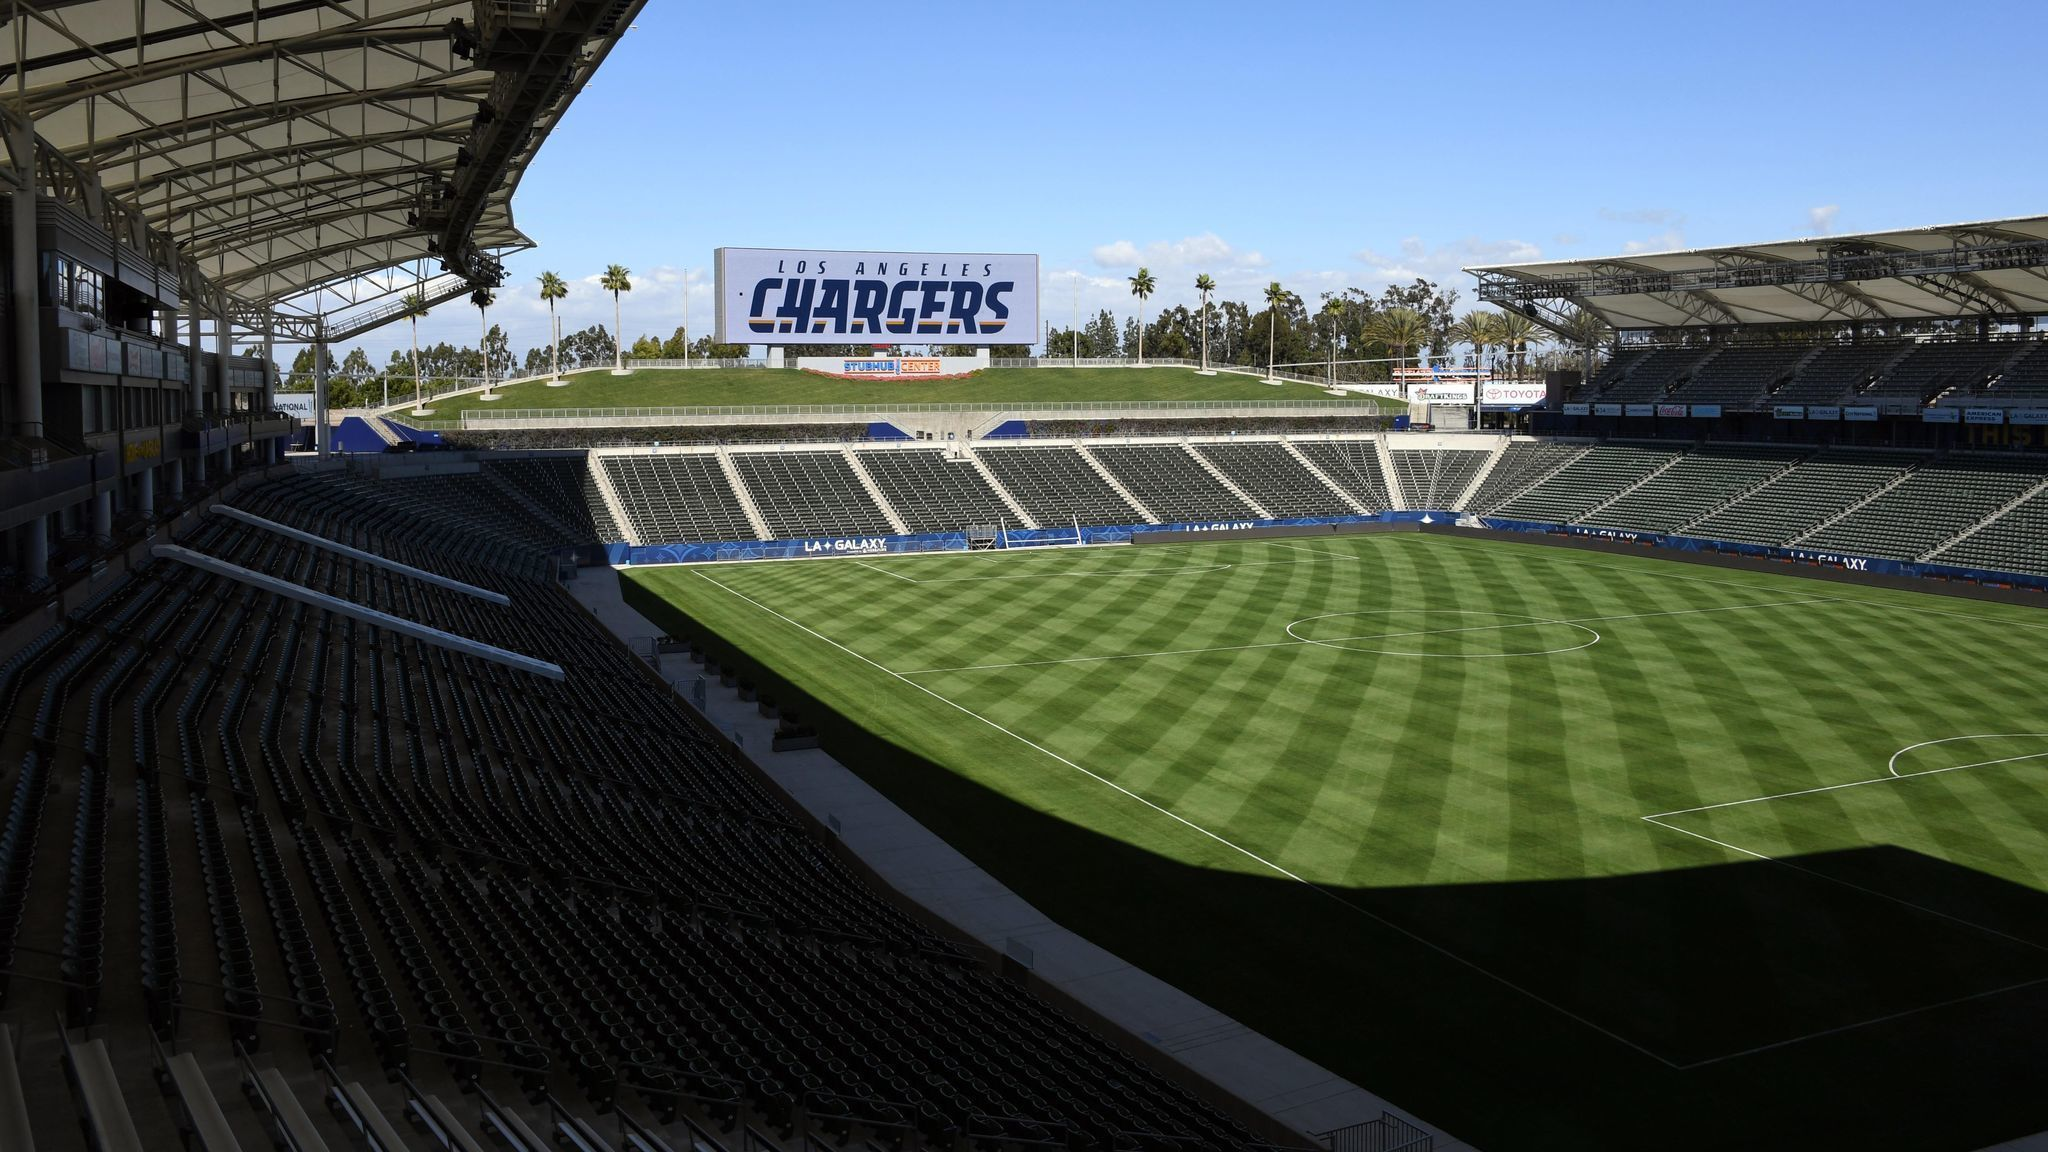 Easy to see value in Chargers intimate new home The San Diego Union Tribune